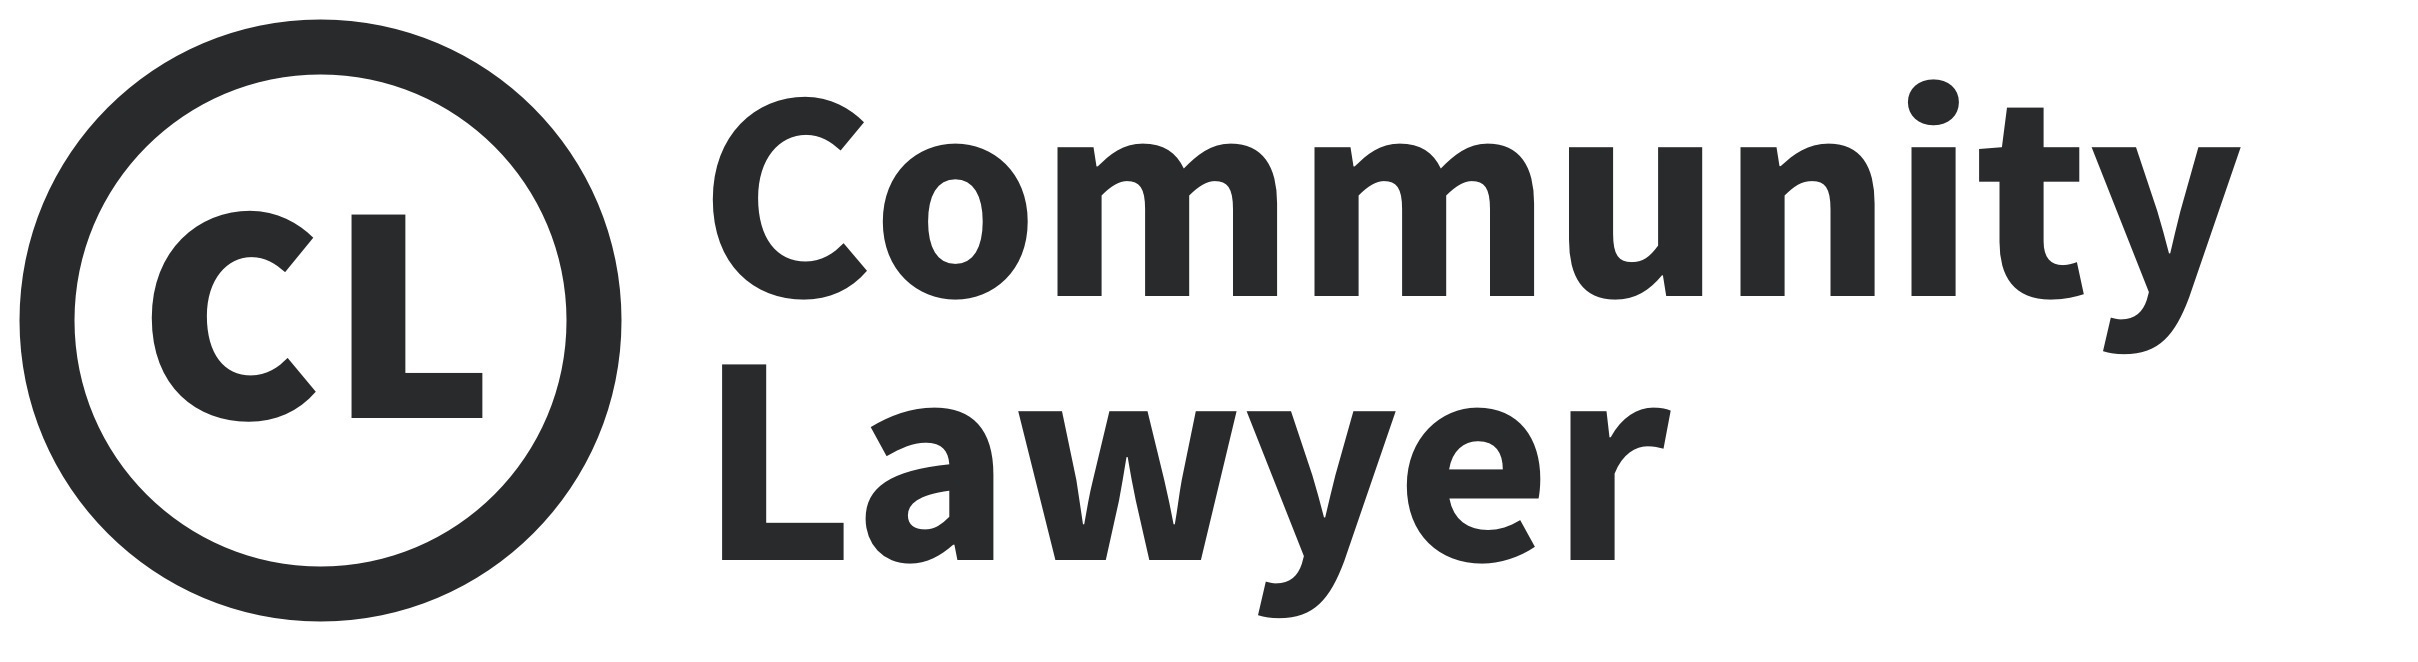 Community.Lawyer is cloud-based expert system, that is very user friendly and allows users to create document assembly and eligibility advisor tools.